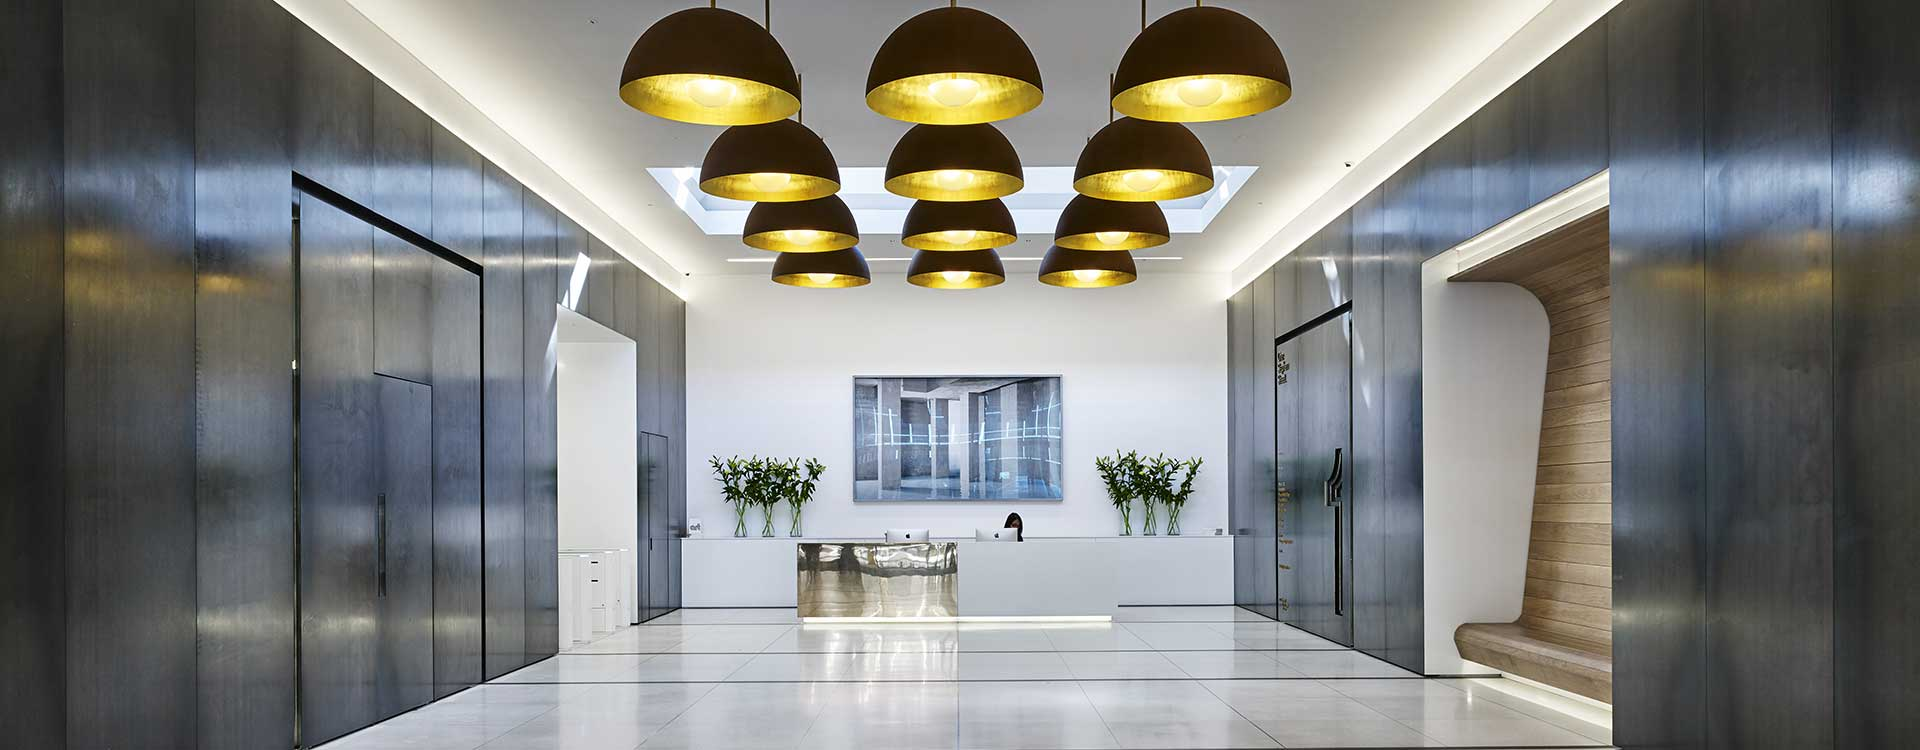 led lighting in central cross office complex